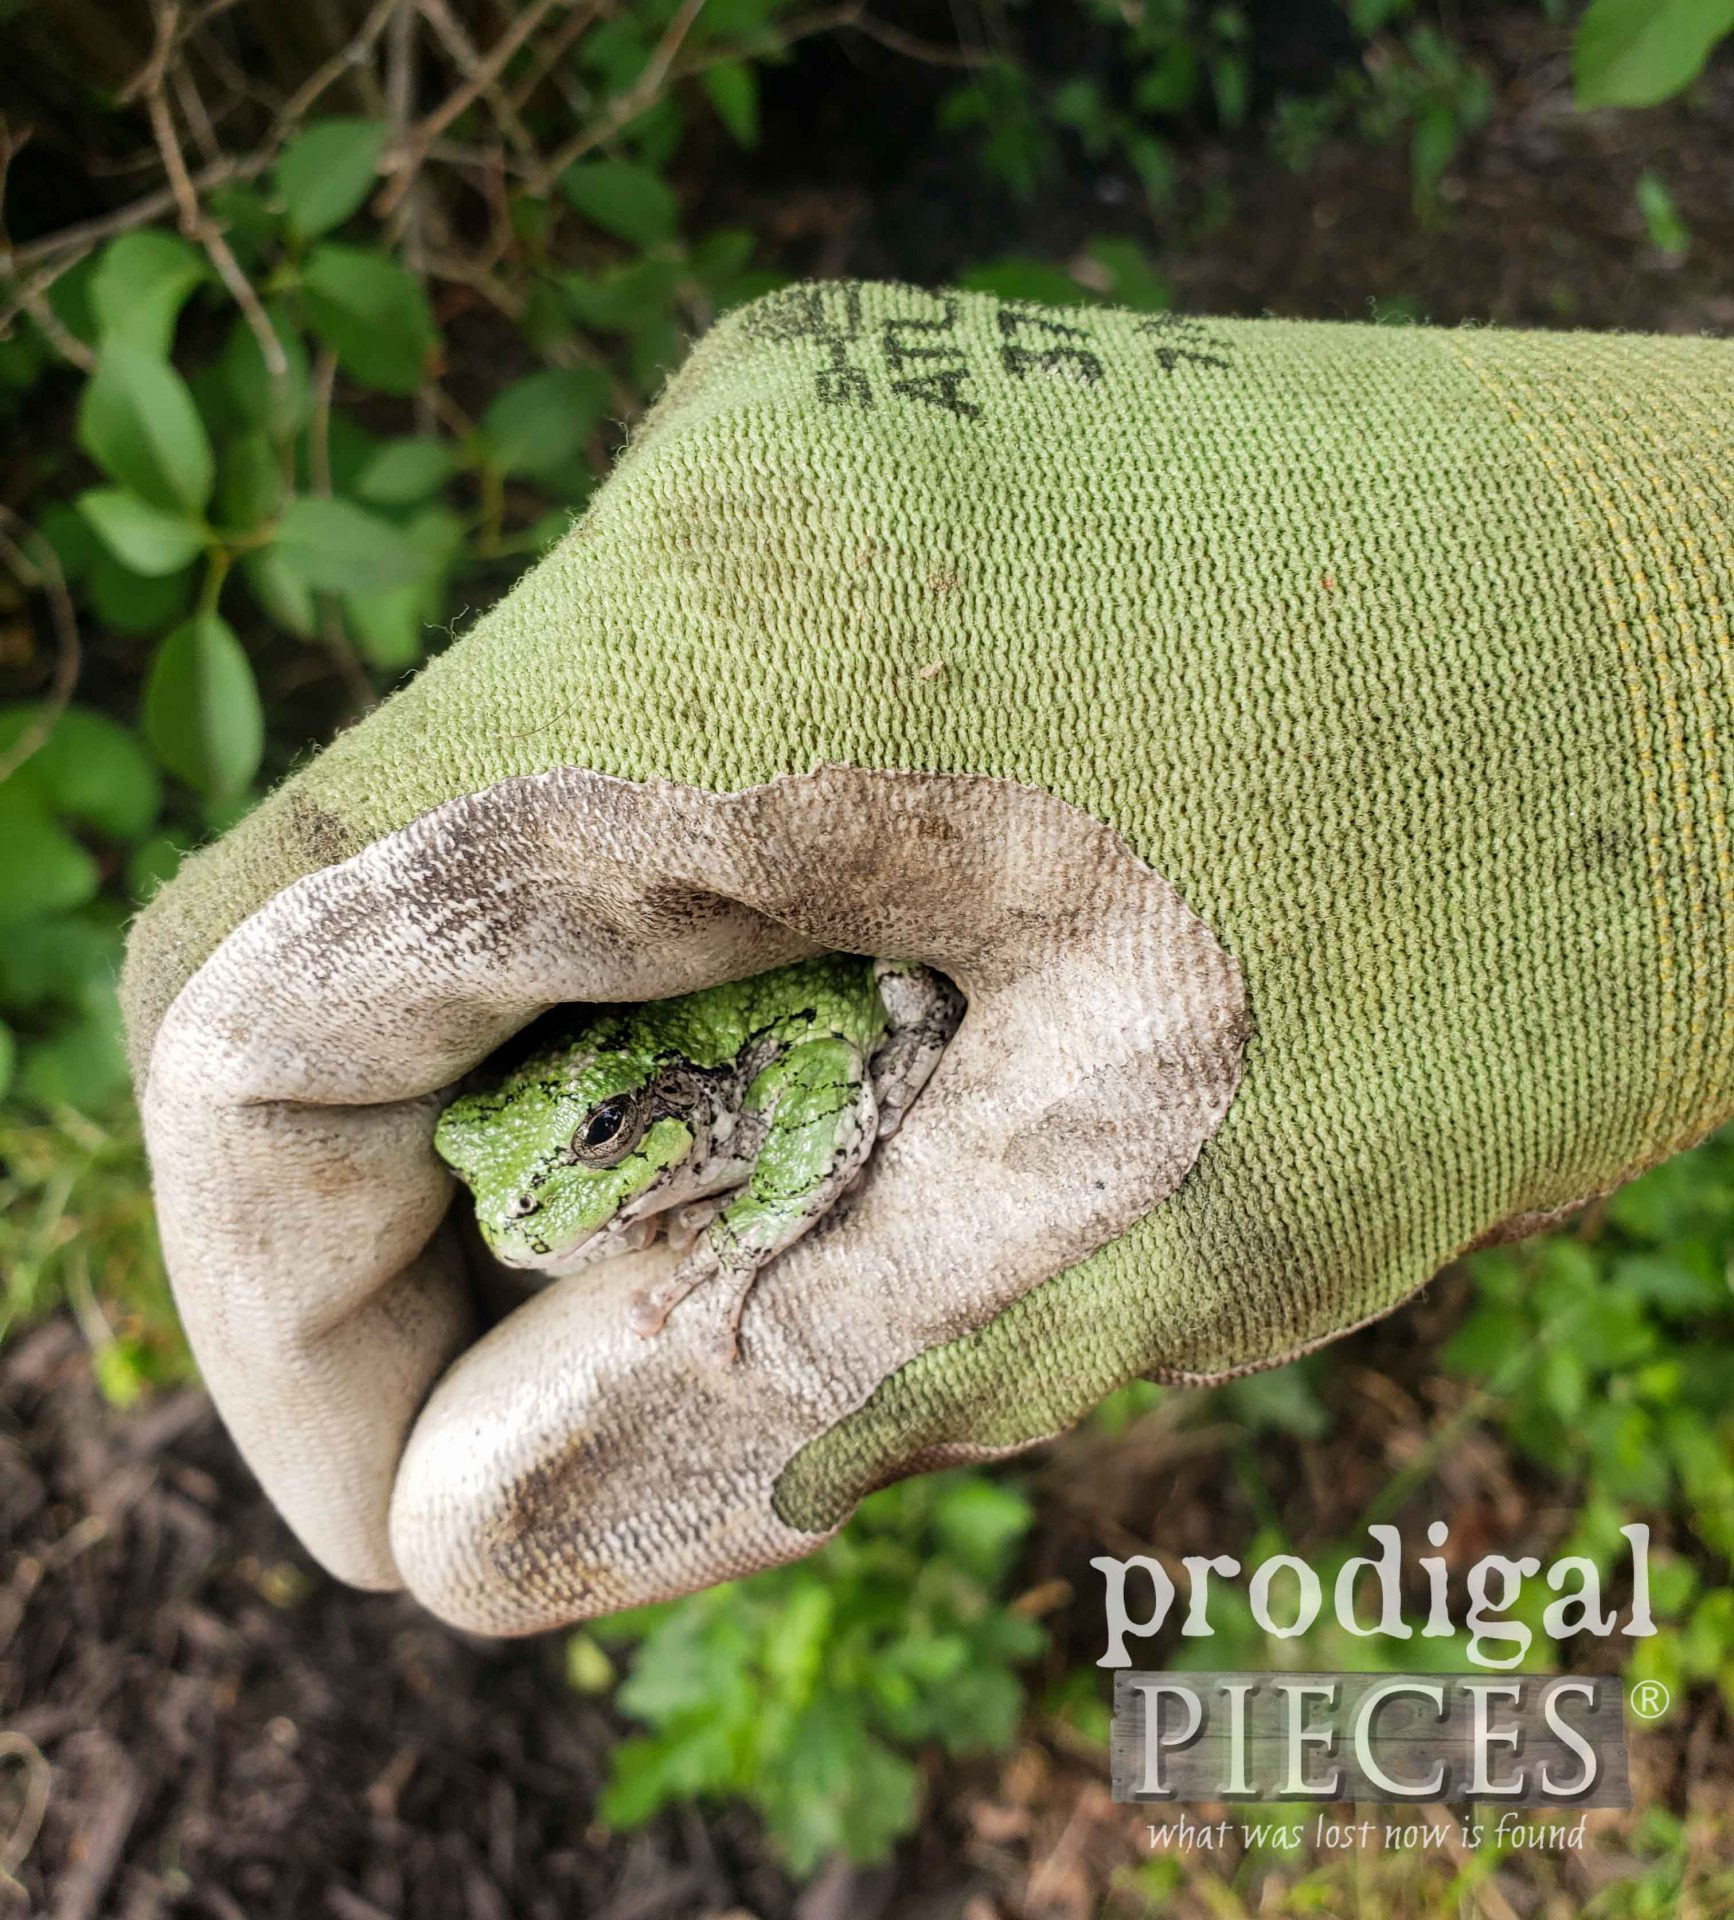 Spring Peeper in Prodigal Pieces Garden | prodigalpieces.com